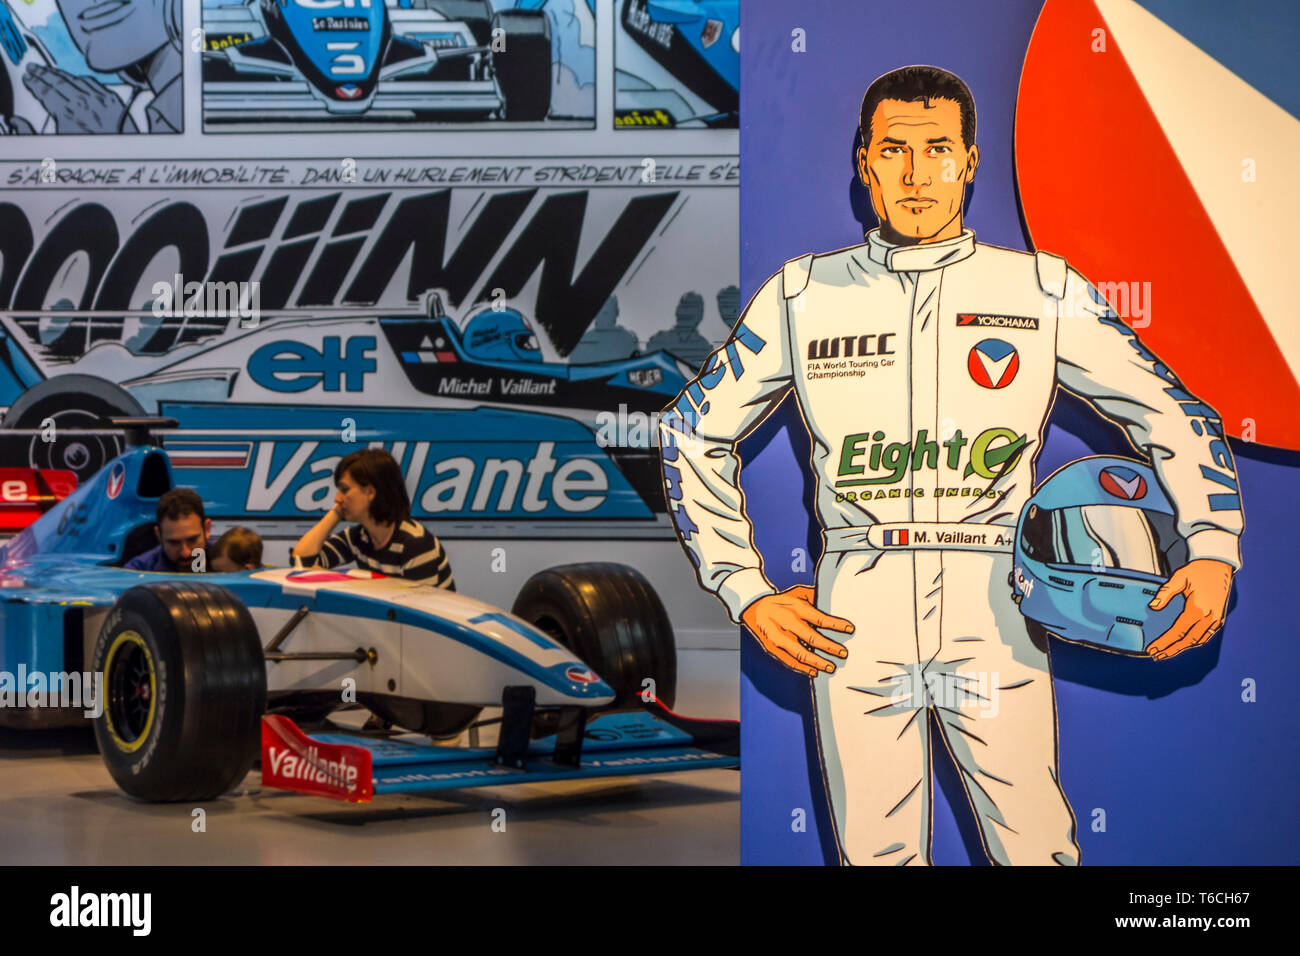 Comic strip character Michel Vaillant, French racing car driver who competes in Formula One at Autoworld, automobile museum in Brussels, Belgium Stock Photo